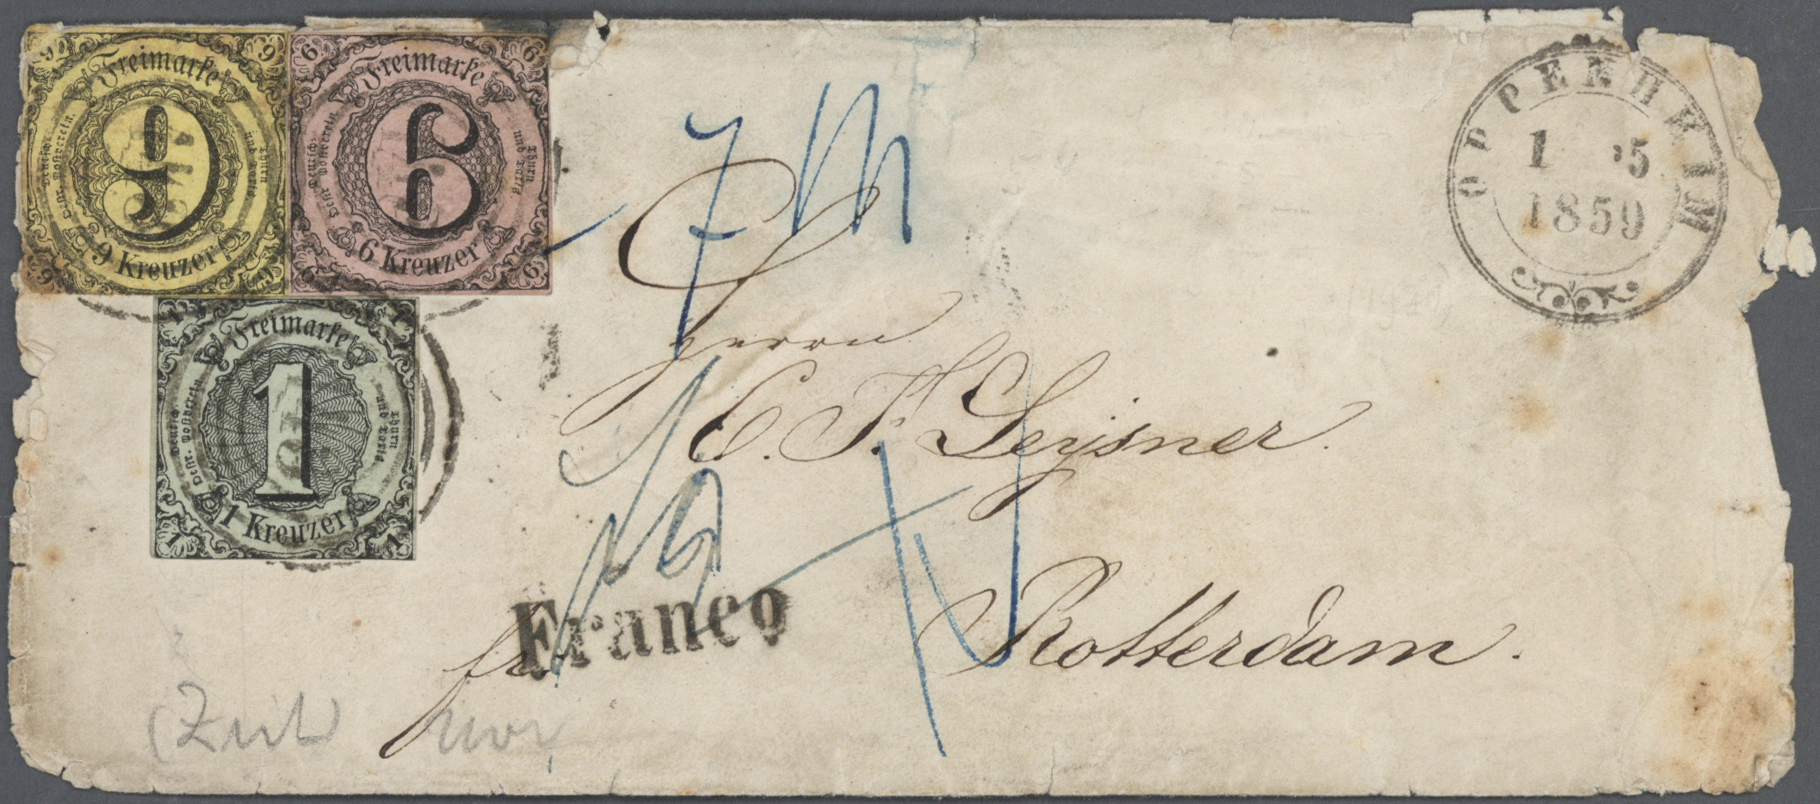 Lot 36482 - Thurn & Taxis - Marken und Briefe  -  Auktionshaus Christoph Gärtner GmbH & Co. KG Collections Germany,  Collections Supplement, Surprise boxes #39 Day 7